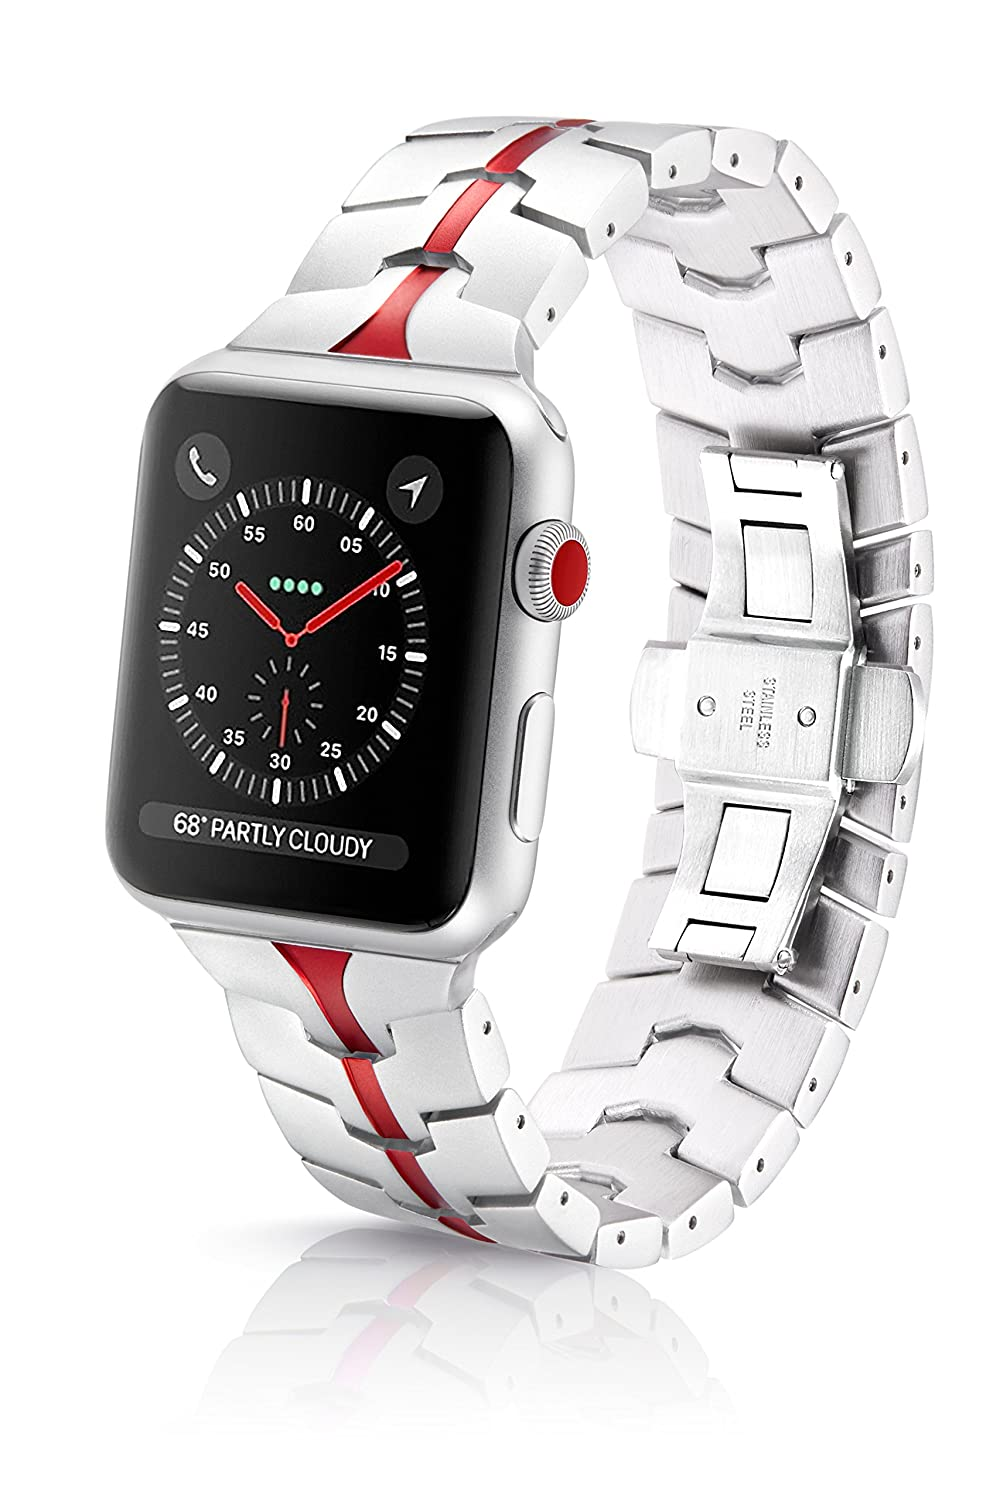 42/44mm JUUK Ruby Silver Vitero Premium Watch Band Made for The Apple Watch, Using Aircraft Grade, Hard Anodized 6000 Series Aluminum with a Solid ...